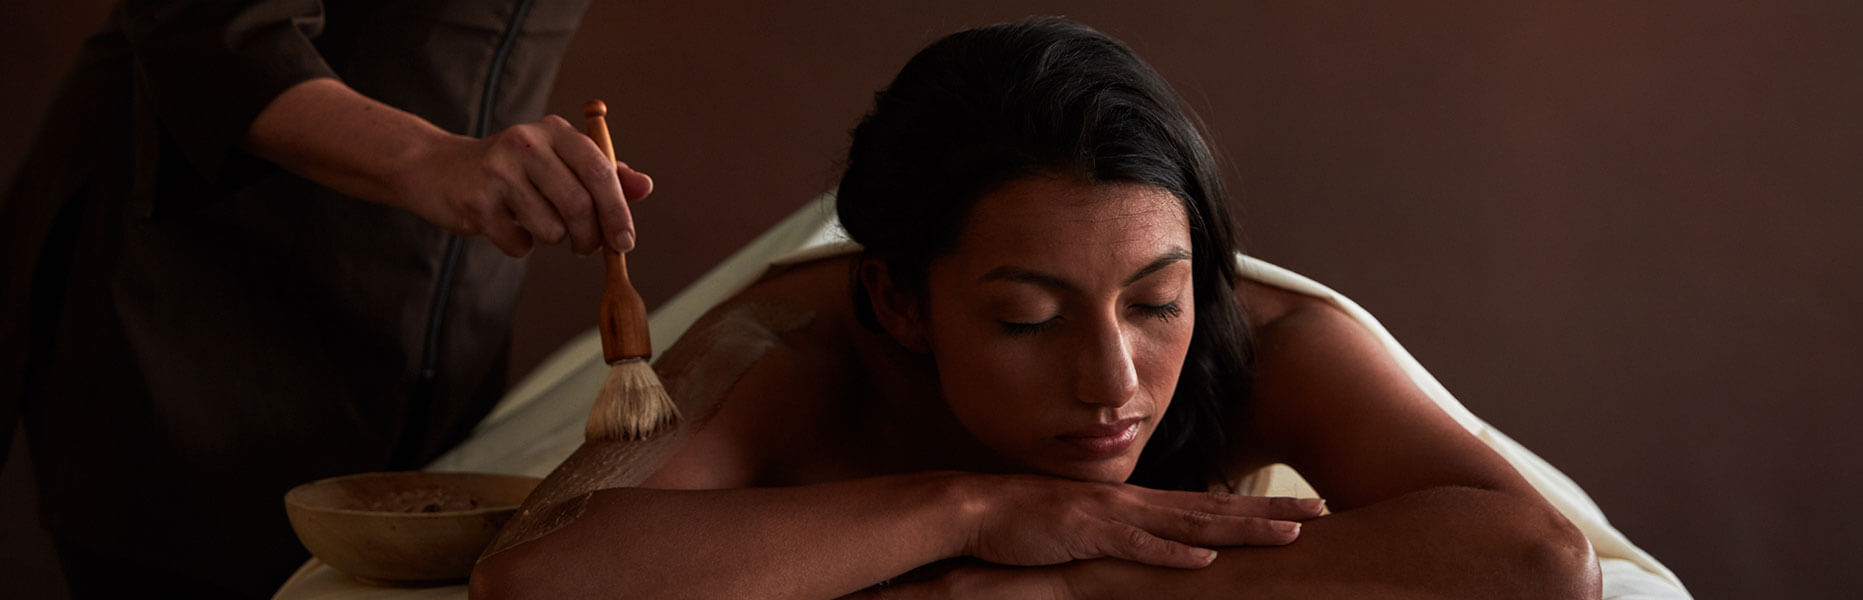 Woman getting a chocolate body treatment